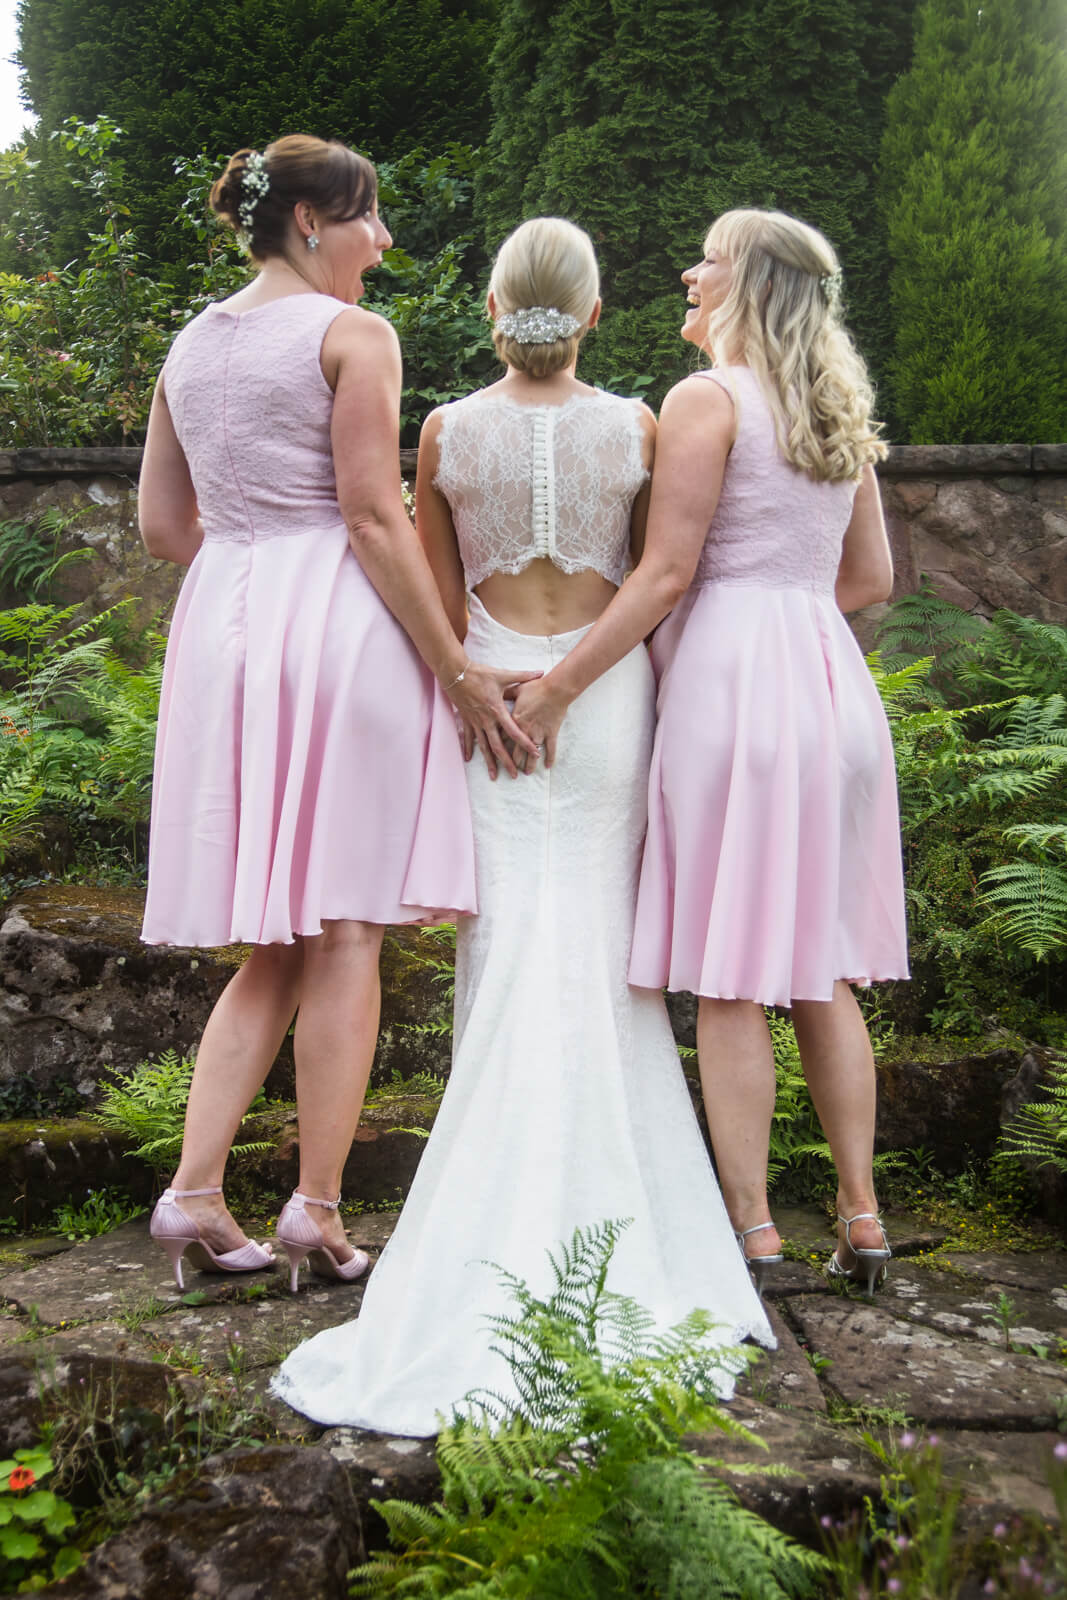 Two bridesmaids in pink pinch the bride's bum